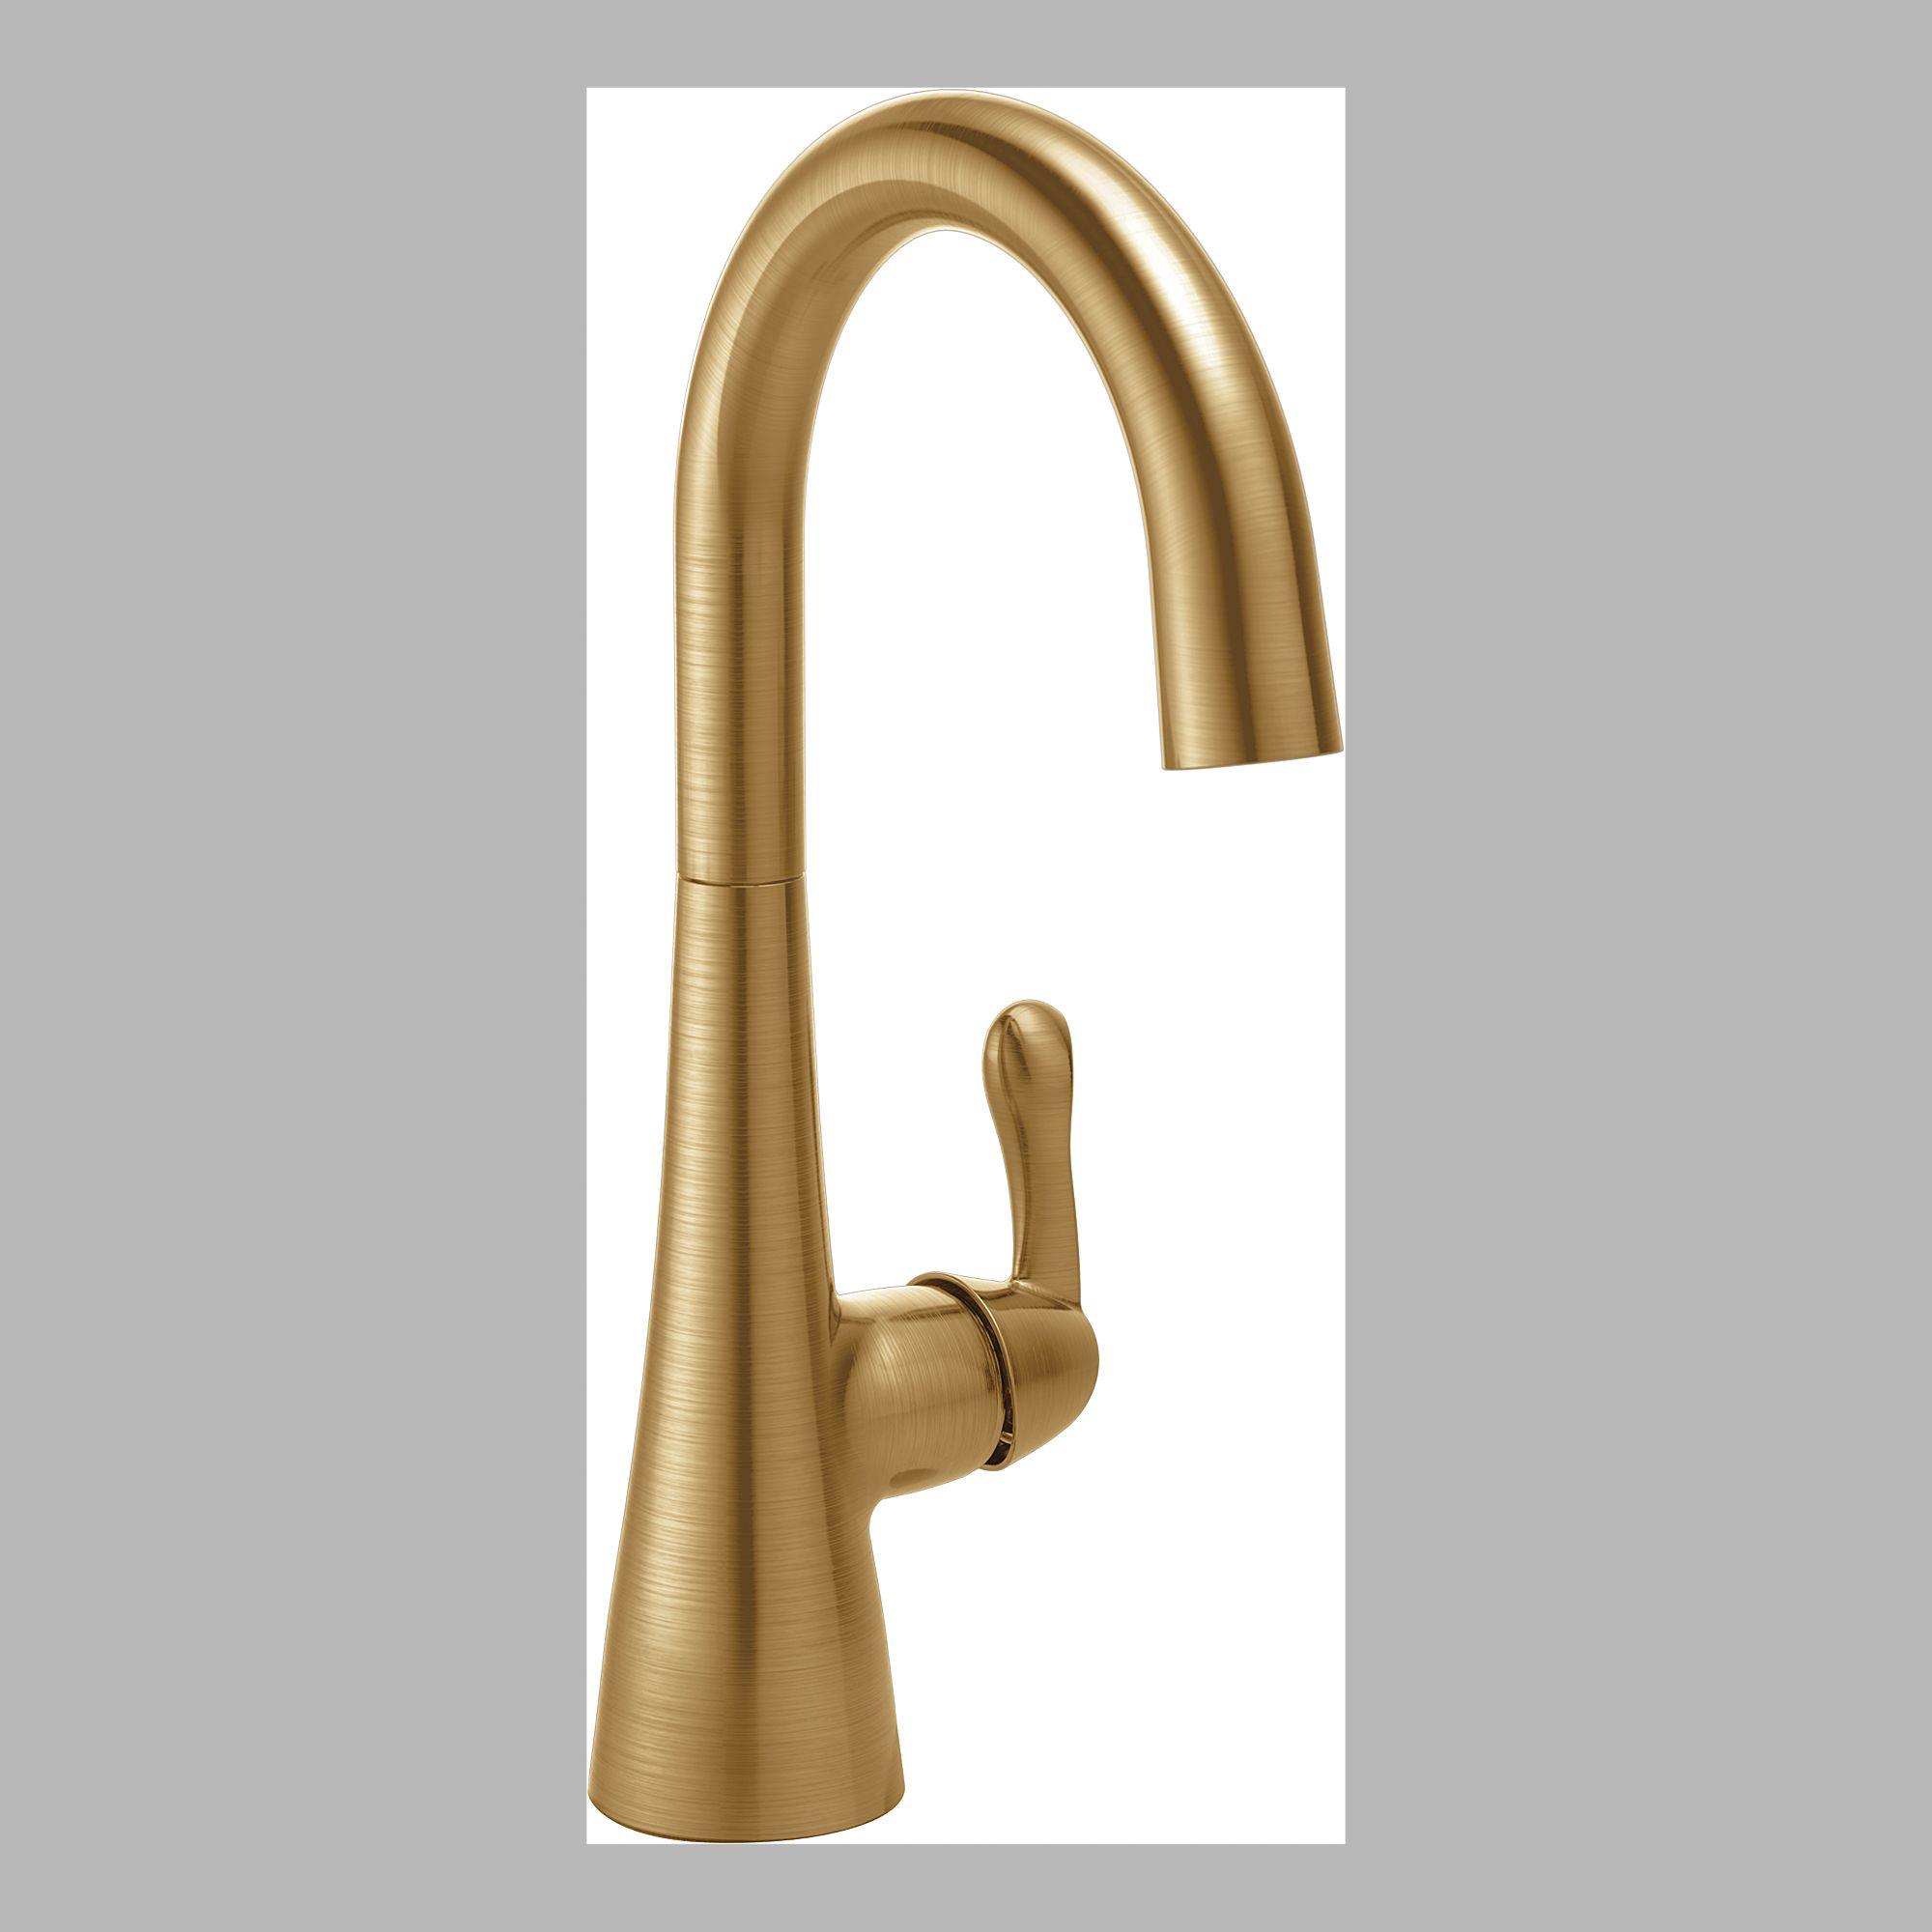 bathroom american functions wall in knob way valve discrete shower body standard faucets diverter three faucet